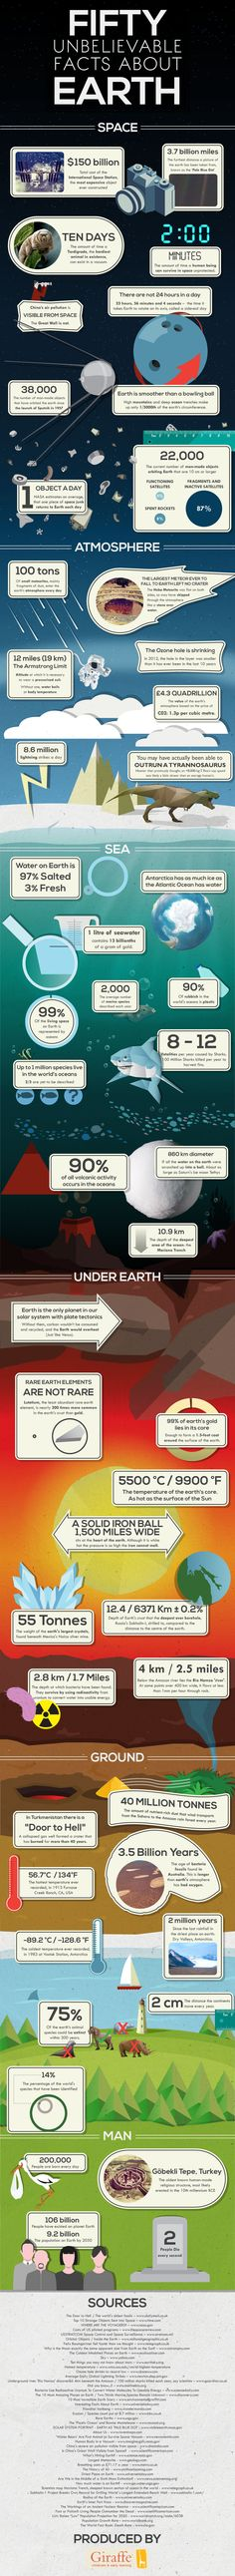 Here's an infographic with 50 facts about Earth.